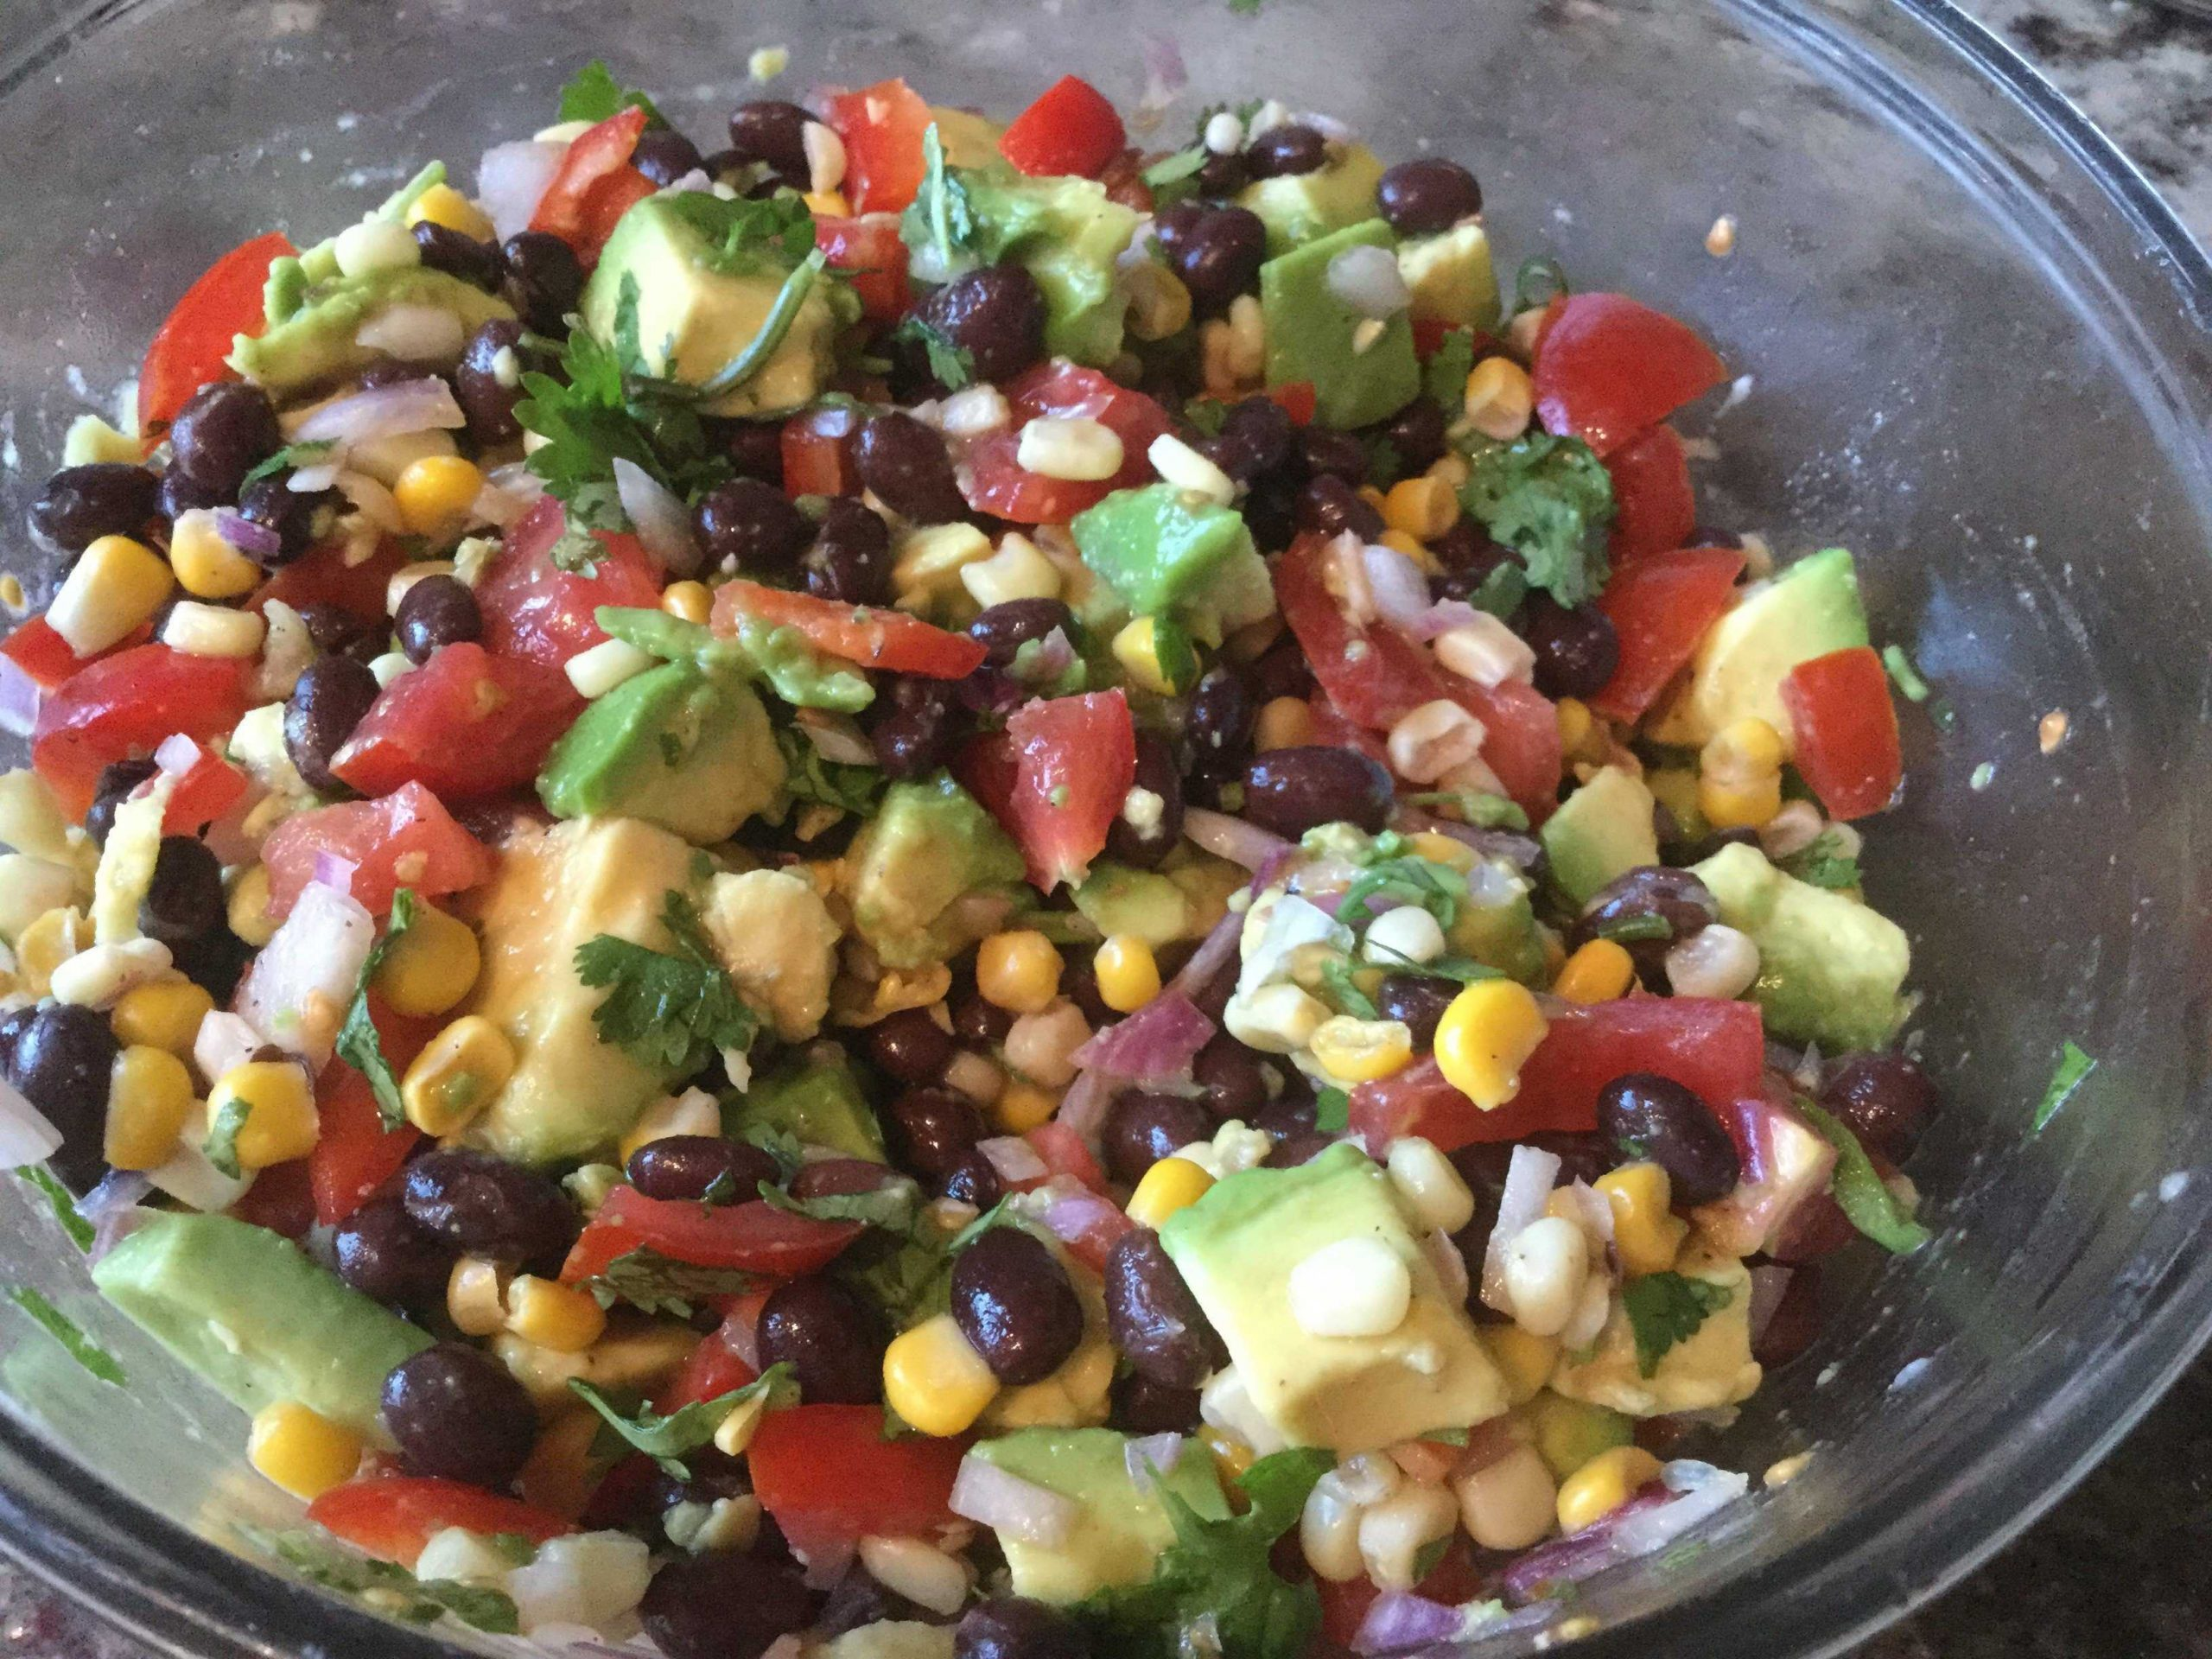 Southwest Avocado Black Bean Salad